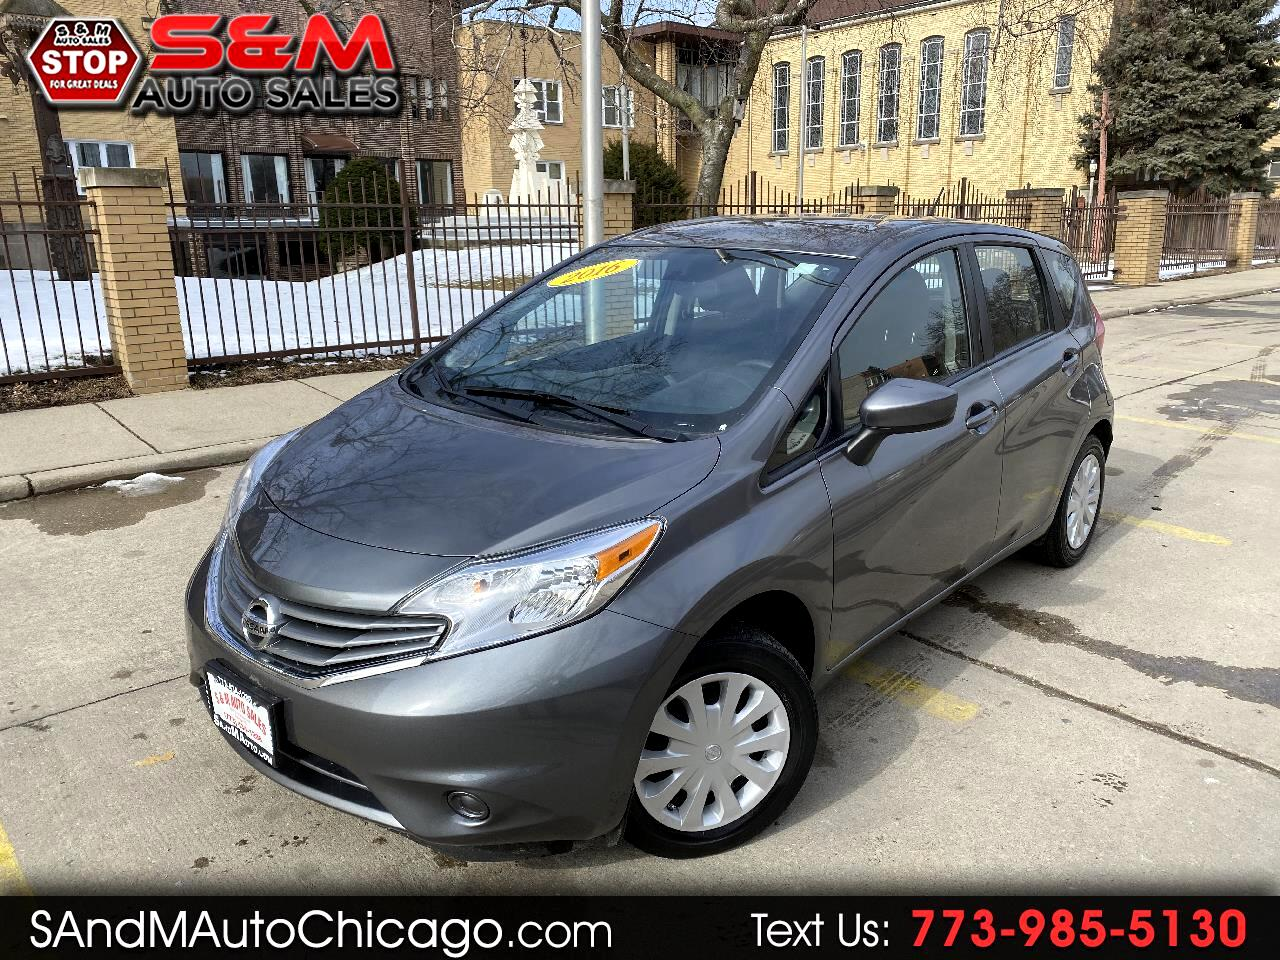 Nissan Versa Note 5dr HB Manual 1.6 S 2016